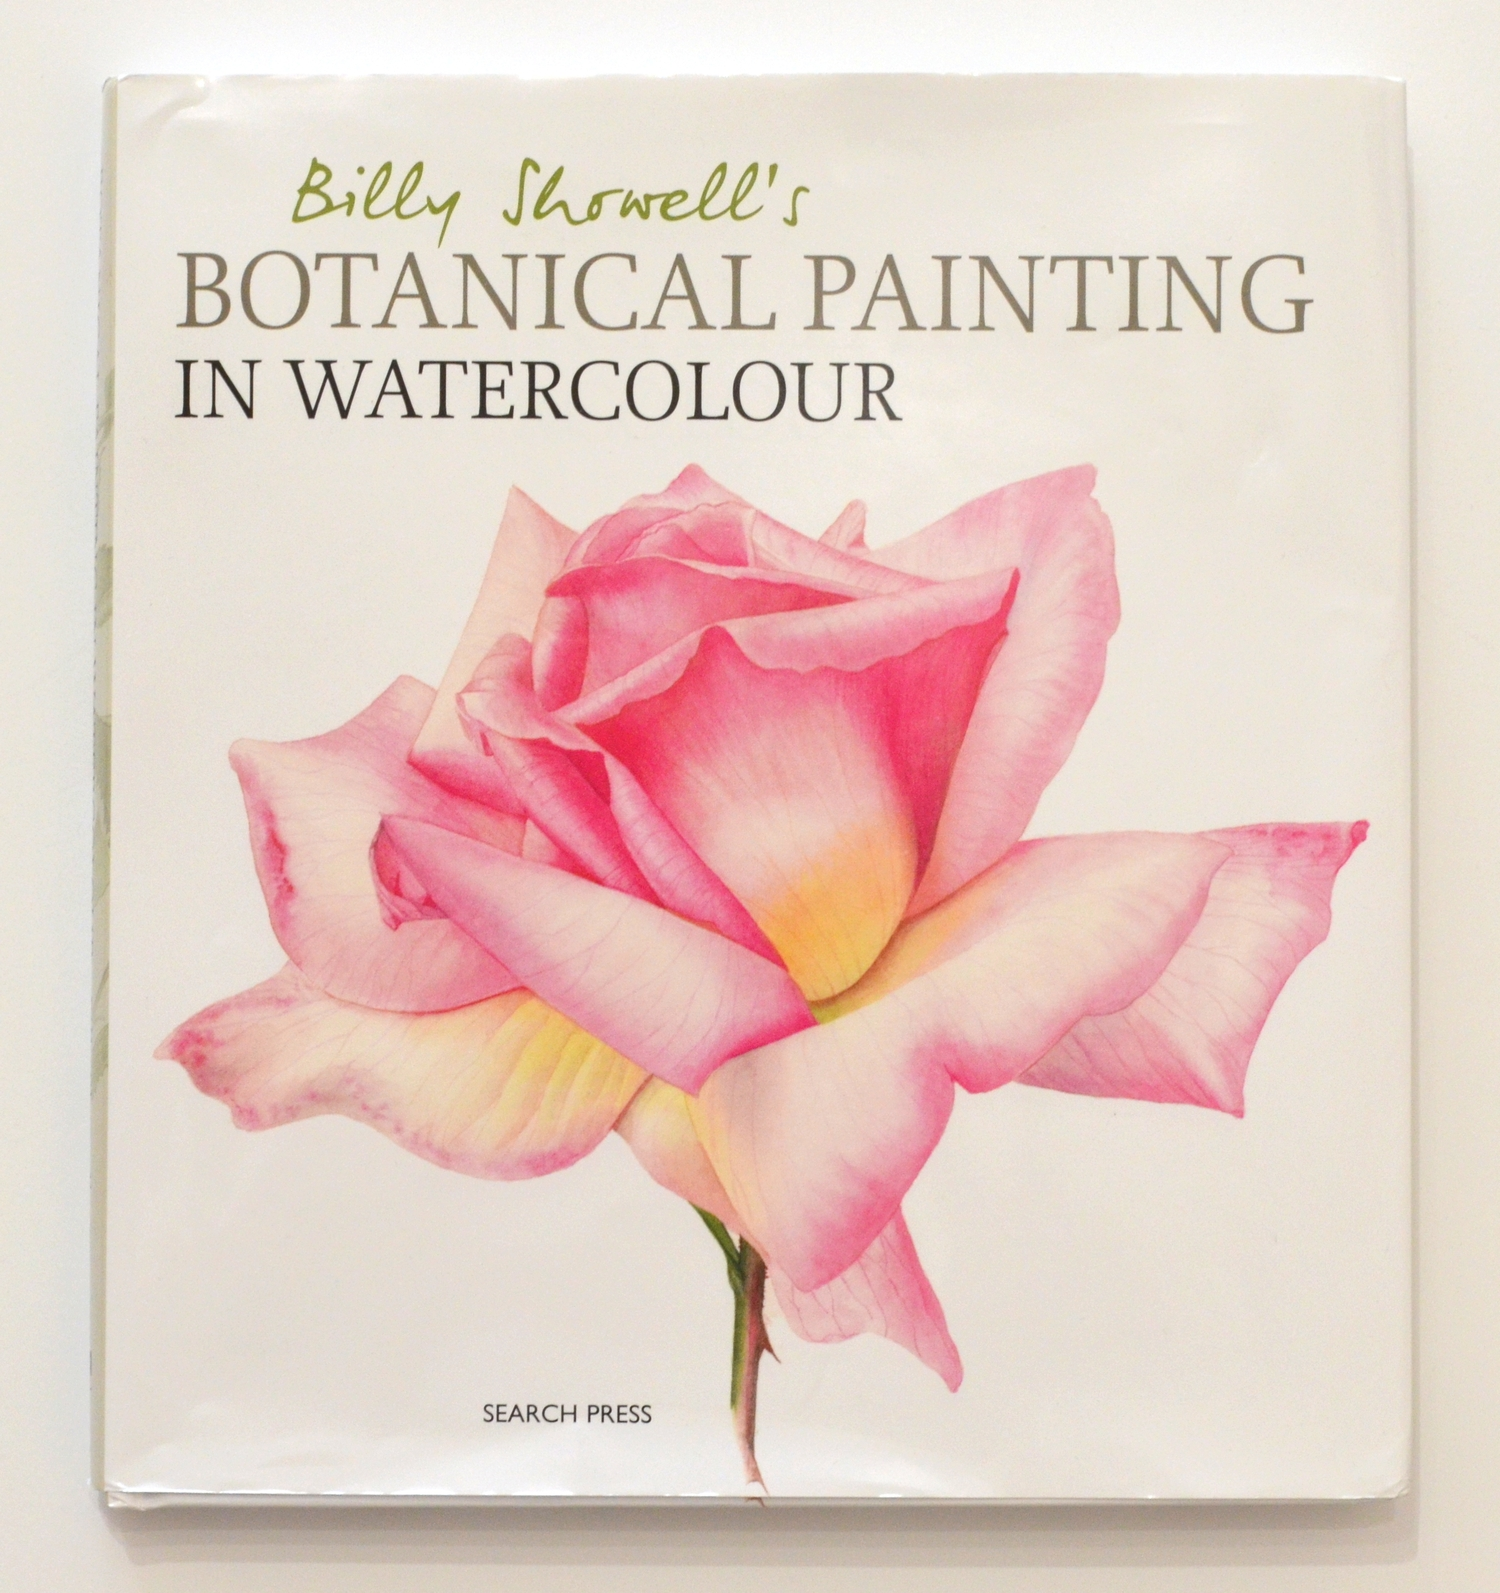 Watercolor books by search press - Of Course I Spent All Day Yesterday Reading It And Admiring All Those Beautiful Paintings Inside I Have All Four Books By Billy And All Of Them Are Just